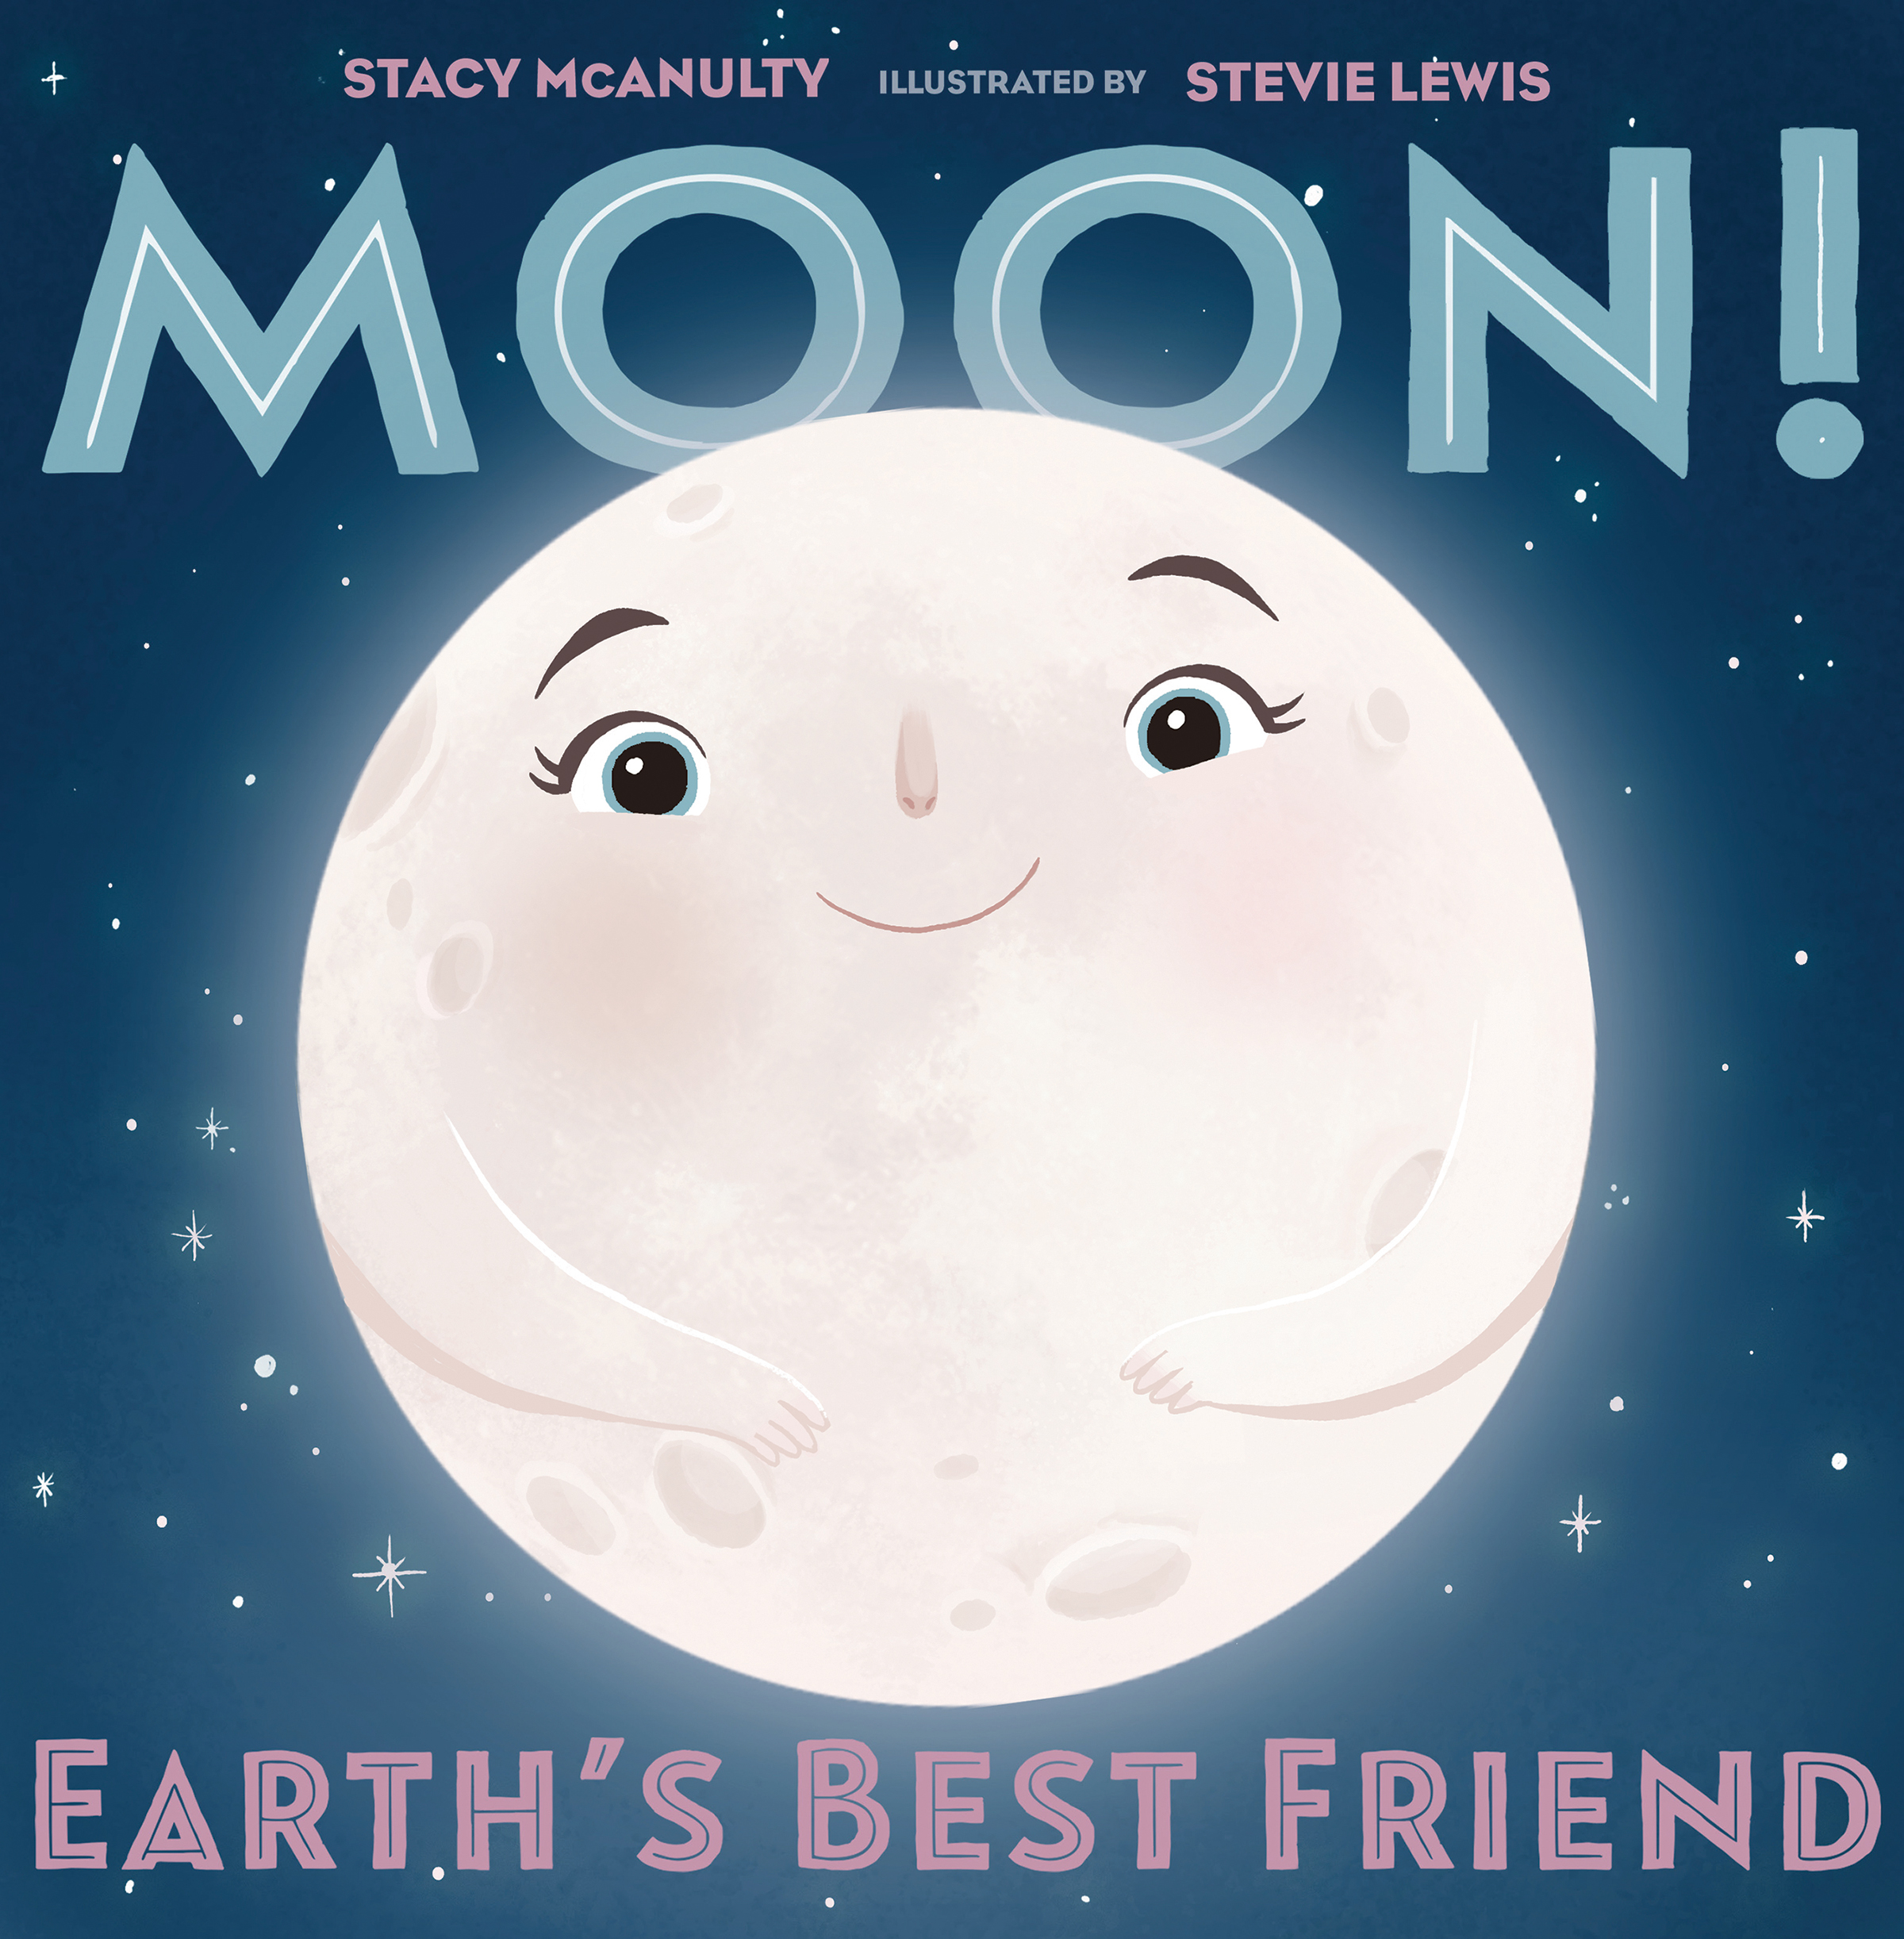 Moon! Earth's Best Friend Author: Stacy McAnulty Illustrator: Stevie Lewis Publisher: Macmillan Date of Publication: June 11, 2019